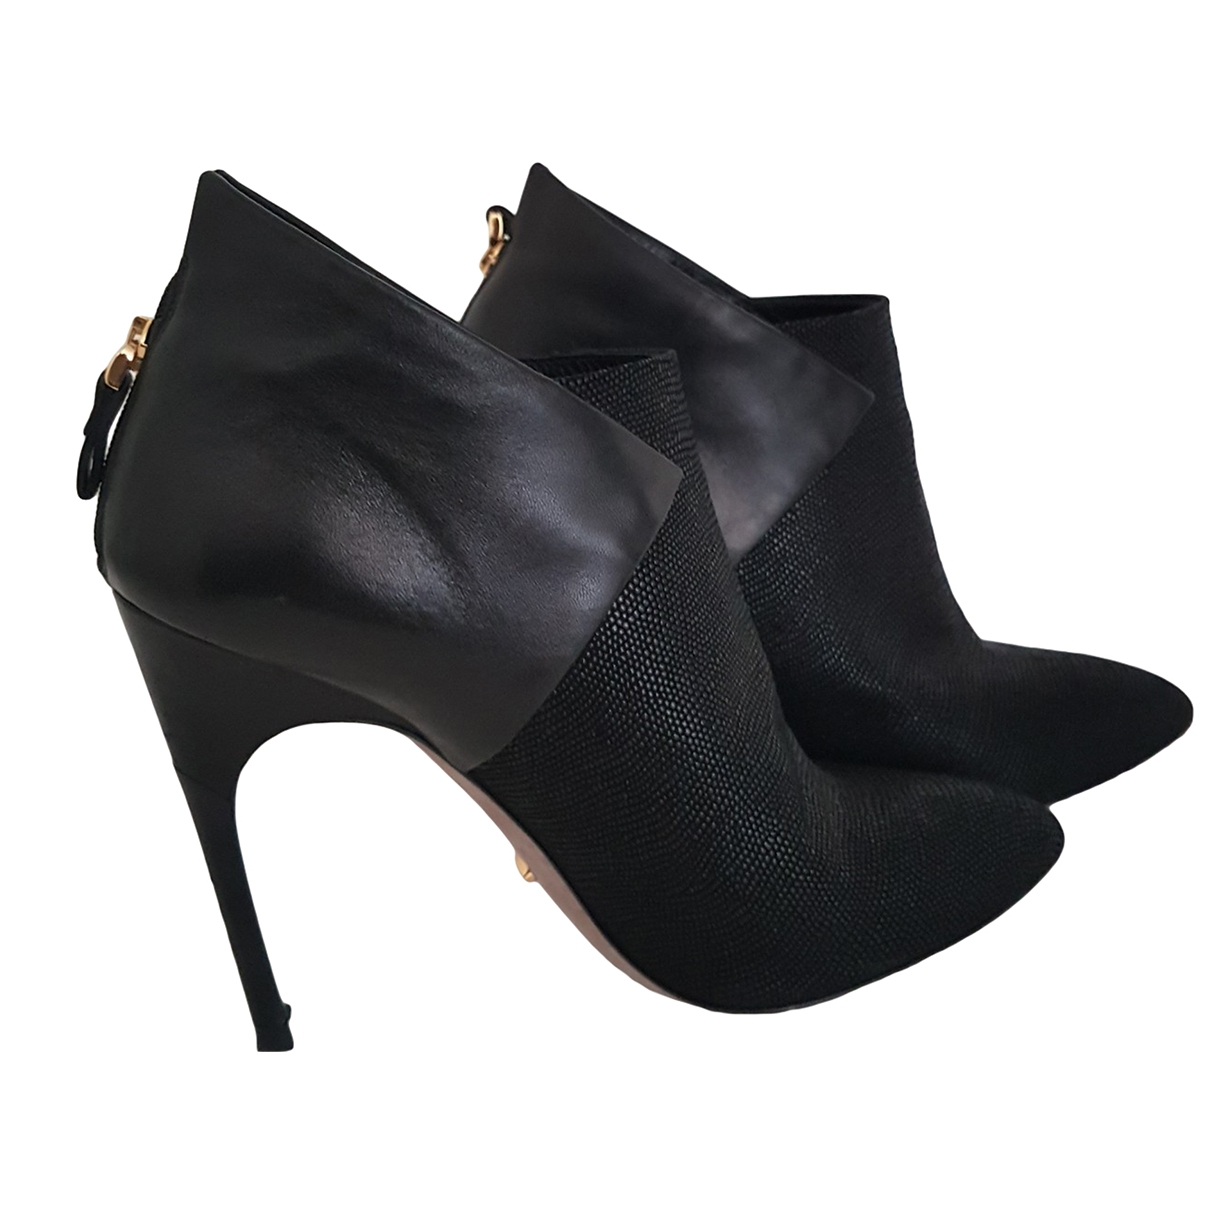 Sergio Rossi \N Black Leather Ankle boots for Women 38.5 EU